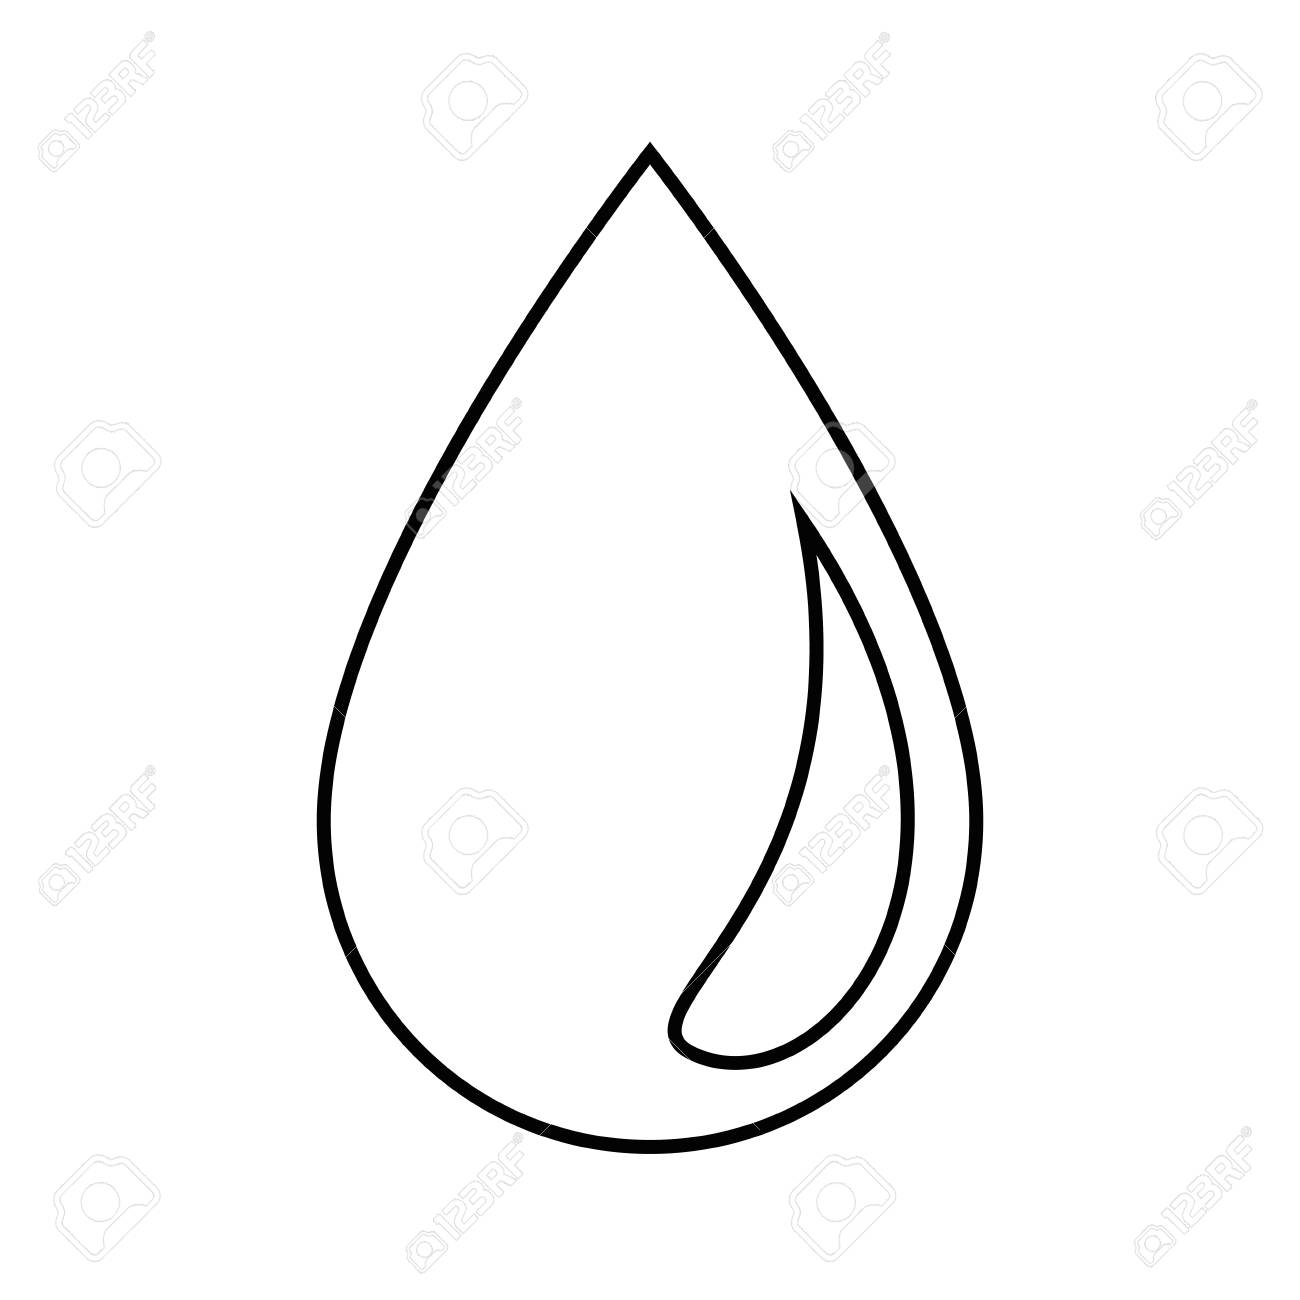 Water drop icon over white background vector illustration. - 83808496